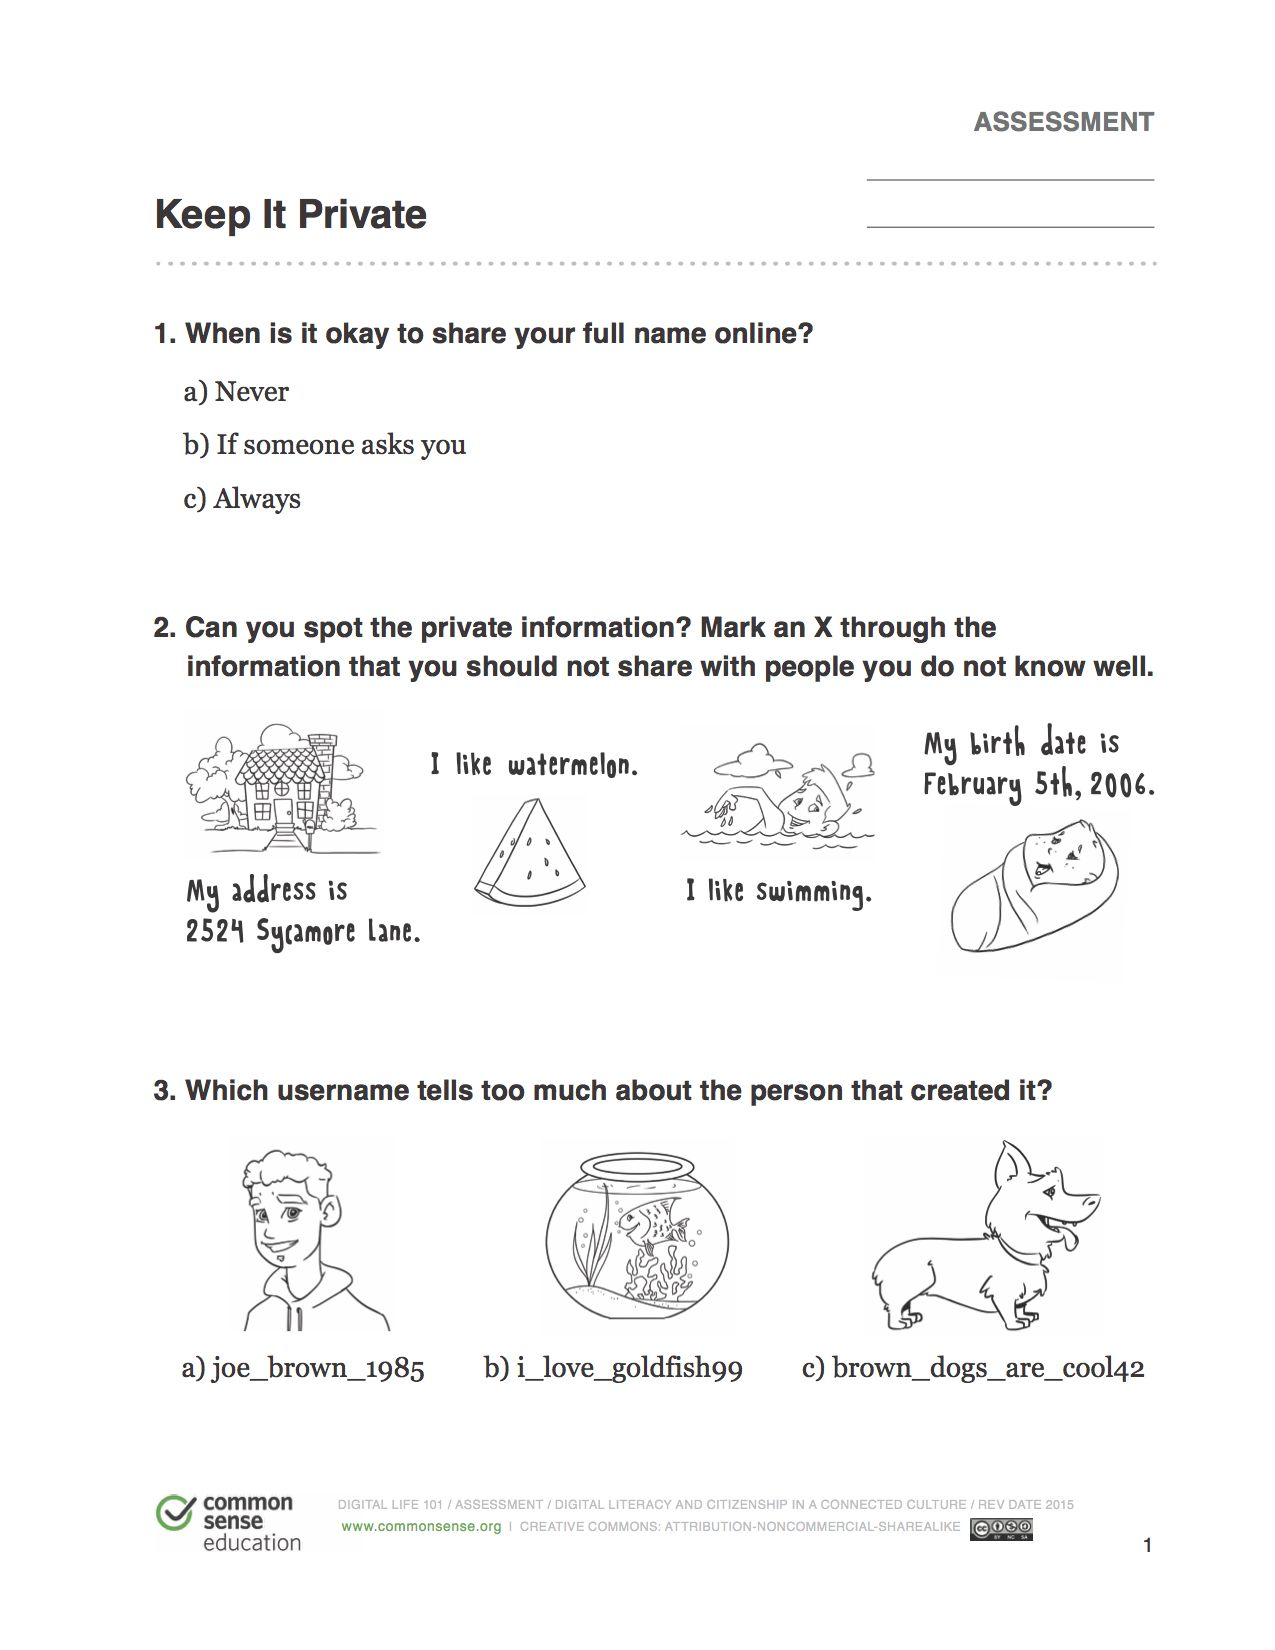 Worksheets Internet Safety Worksheets internet safety worksheet for kids health pinterest kids